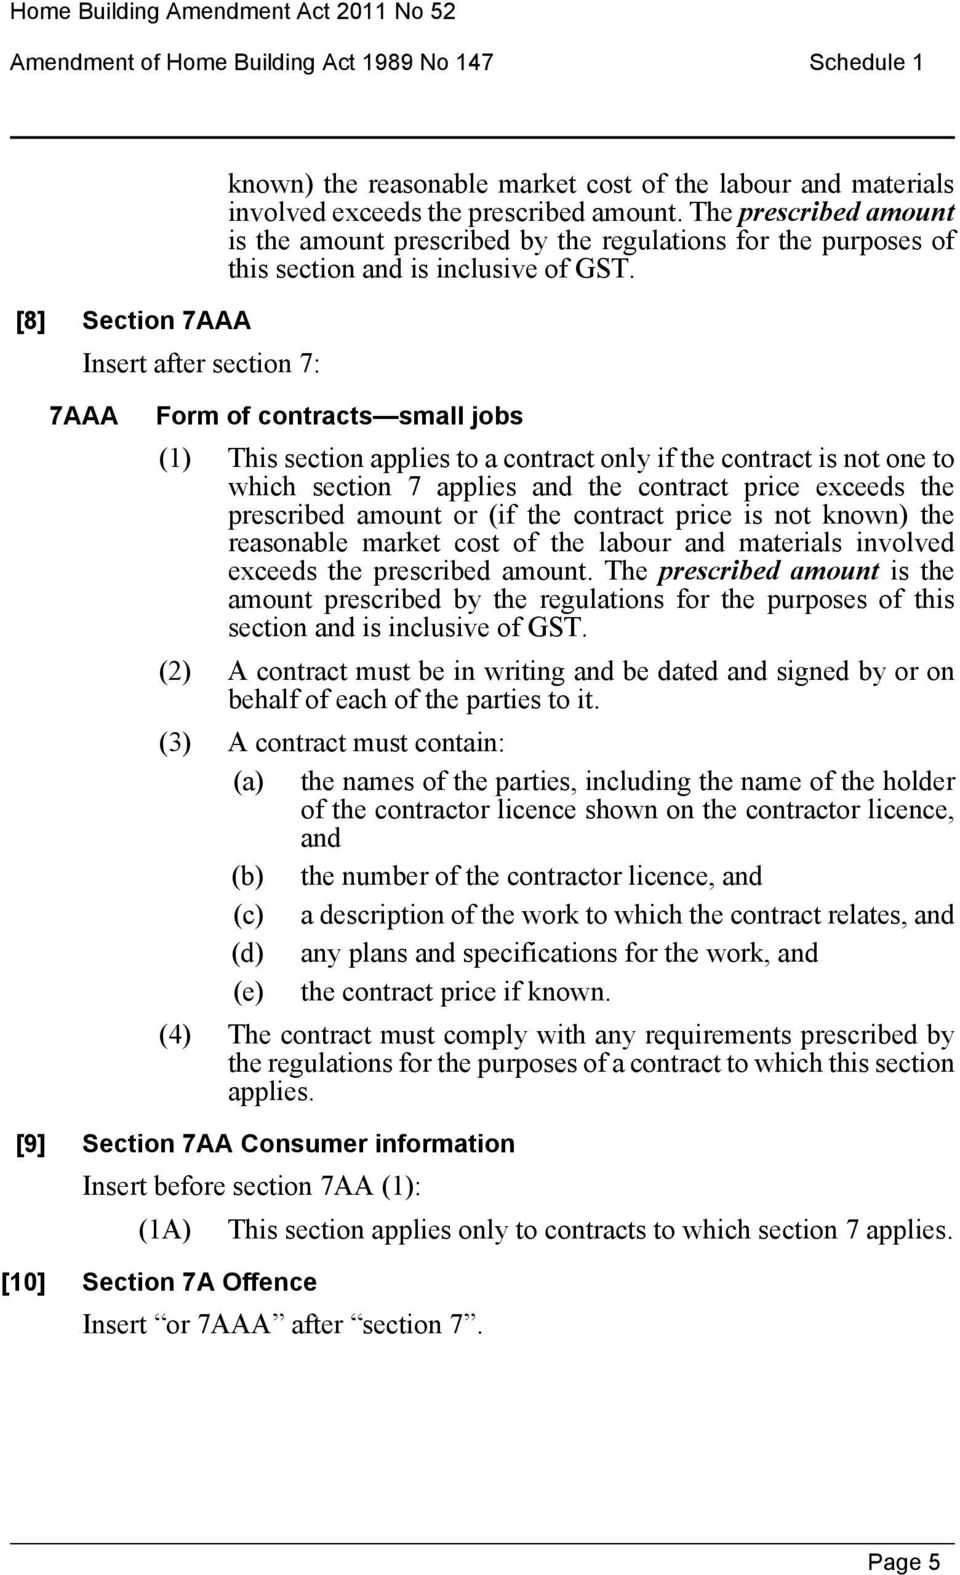 7AAA Form of contracts small jobs (1) This section applies to a contract only if the contract is not one to which section 7 applies and the contract price exceeds the prescribed amount or (if the